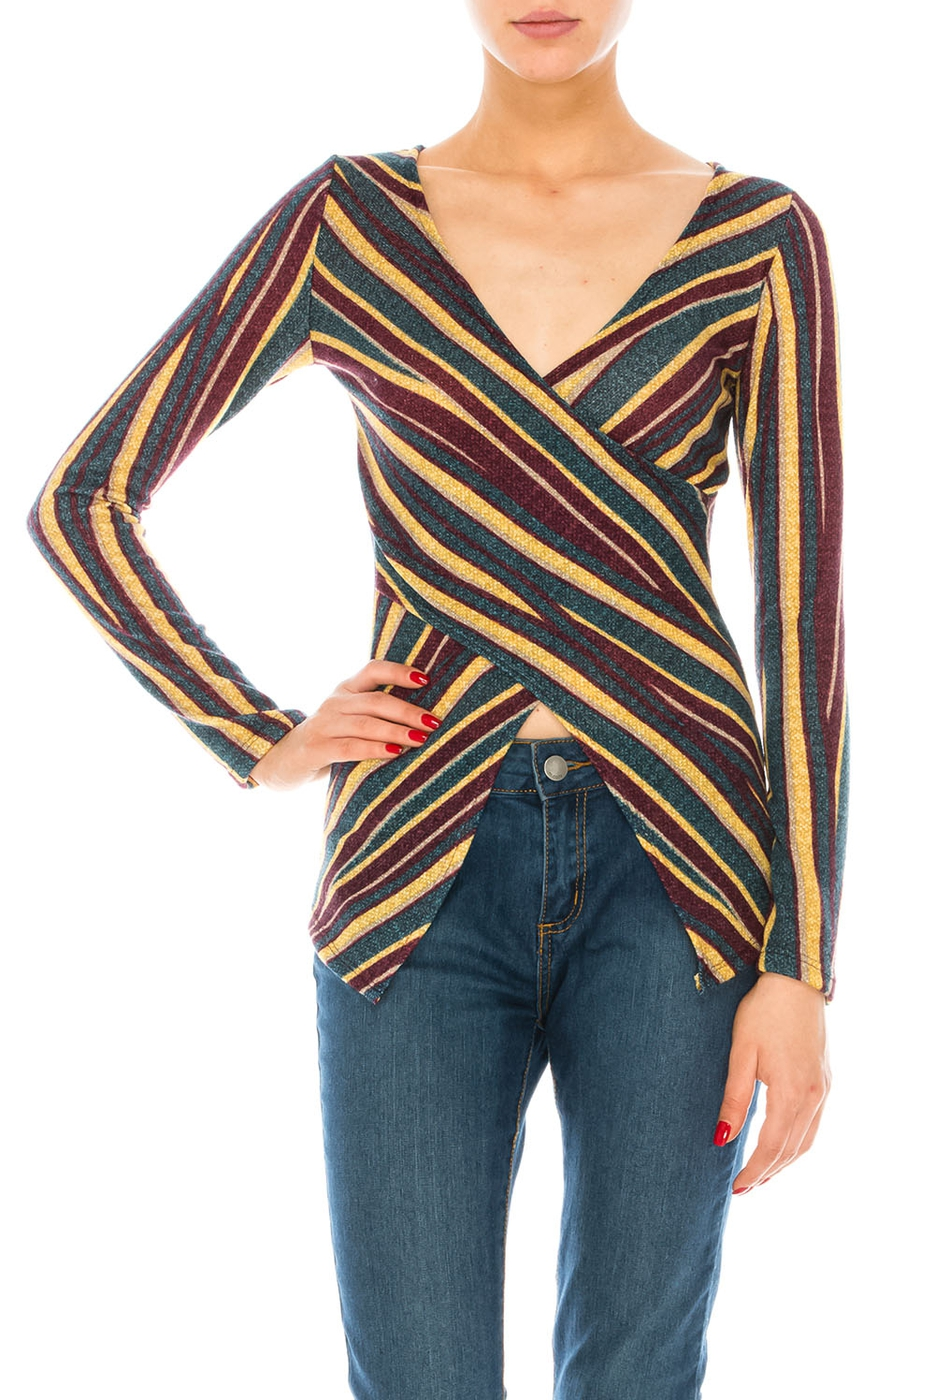 CROSSED LONG SLEEVE TOP - orangeshine.com